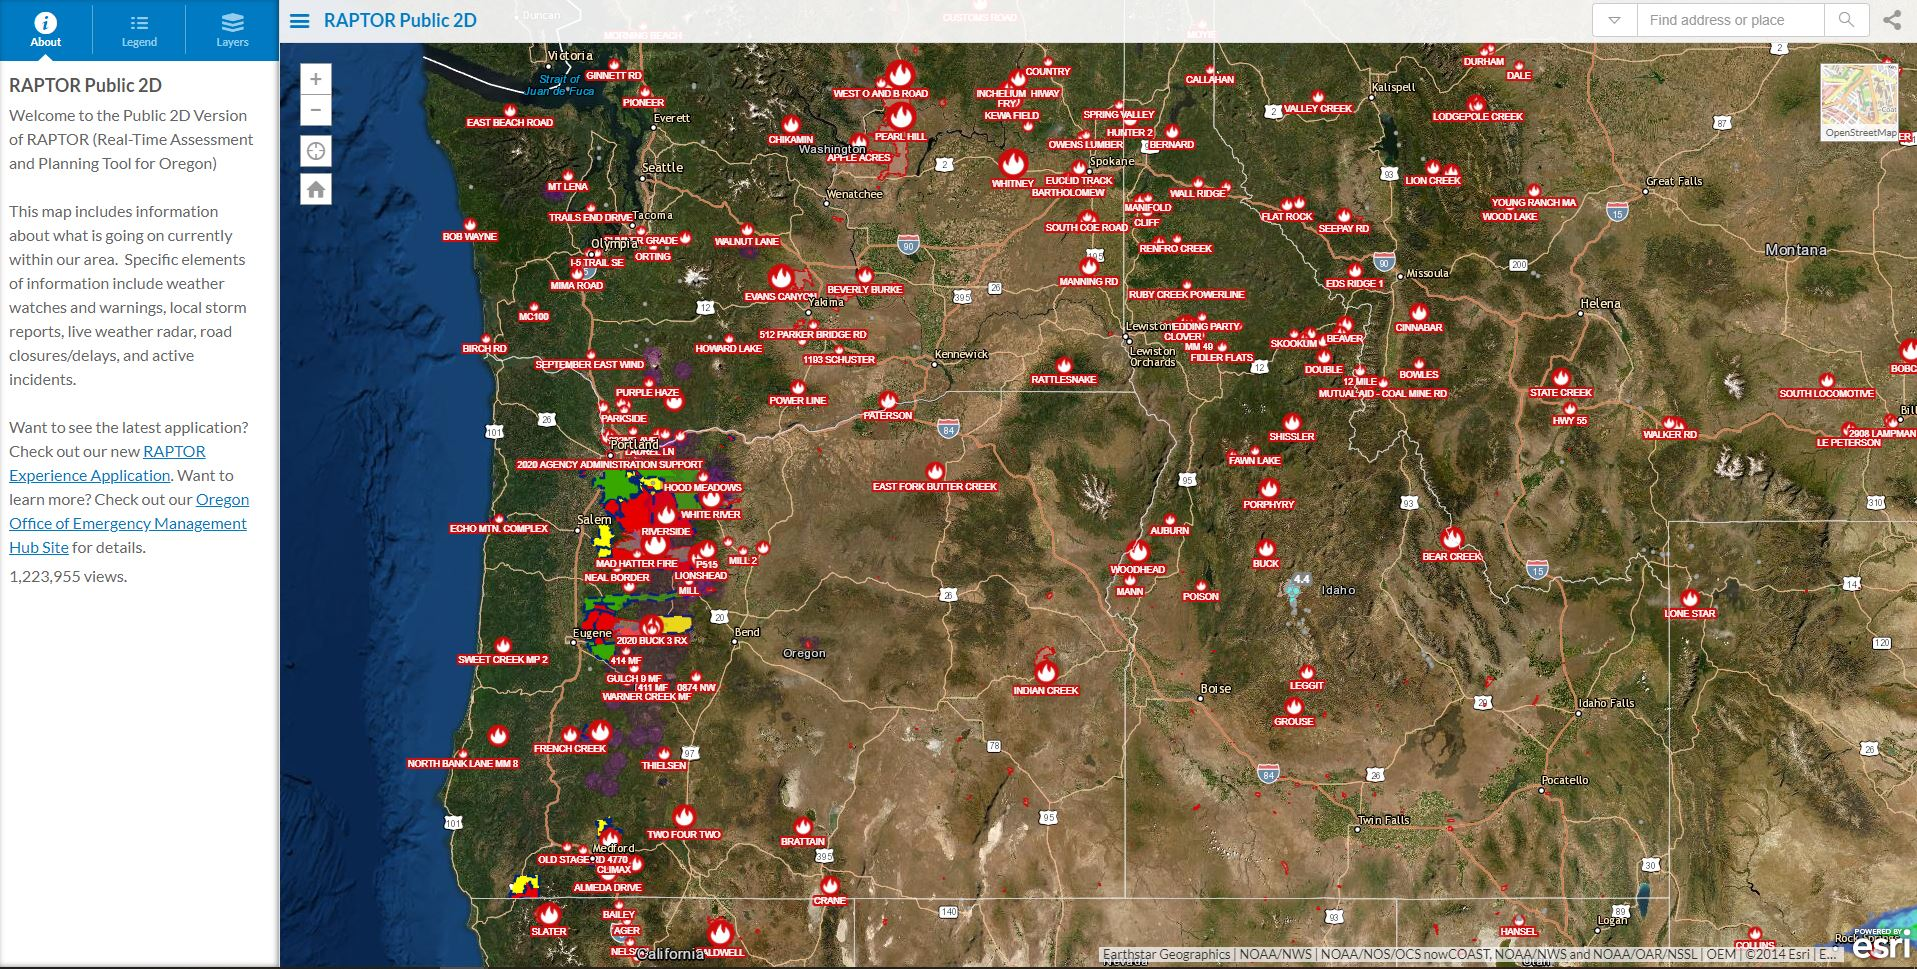 Map showing active wildfires in western United States